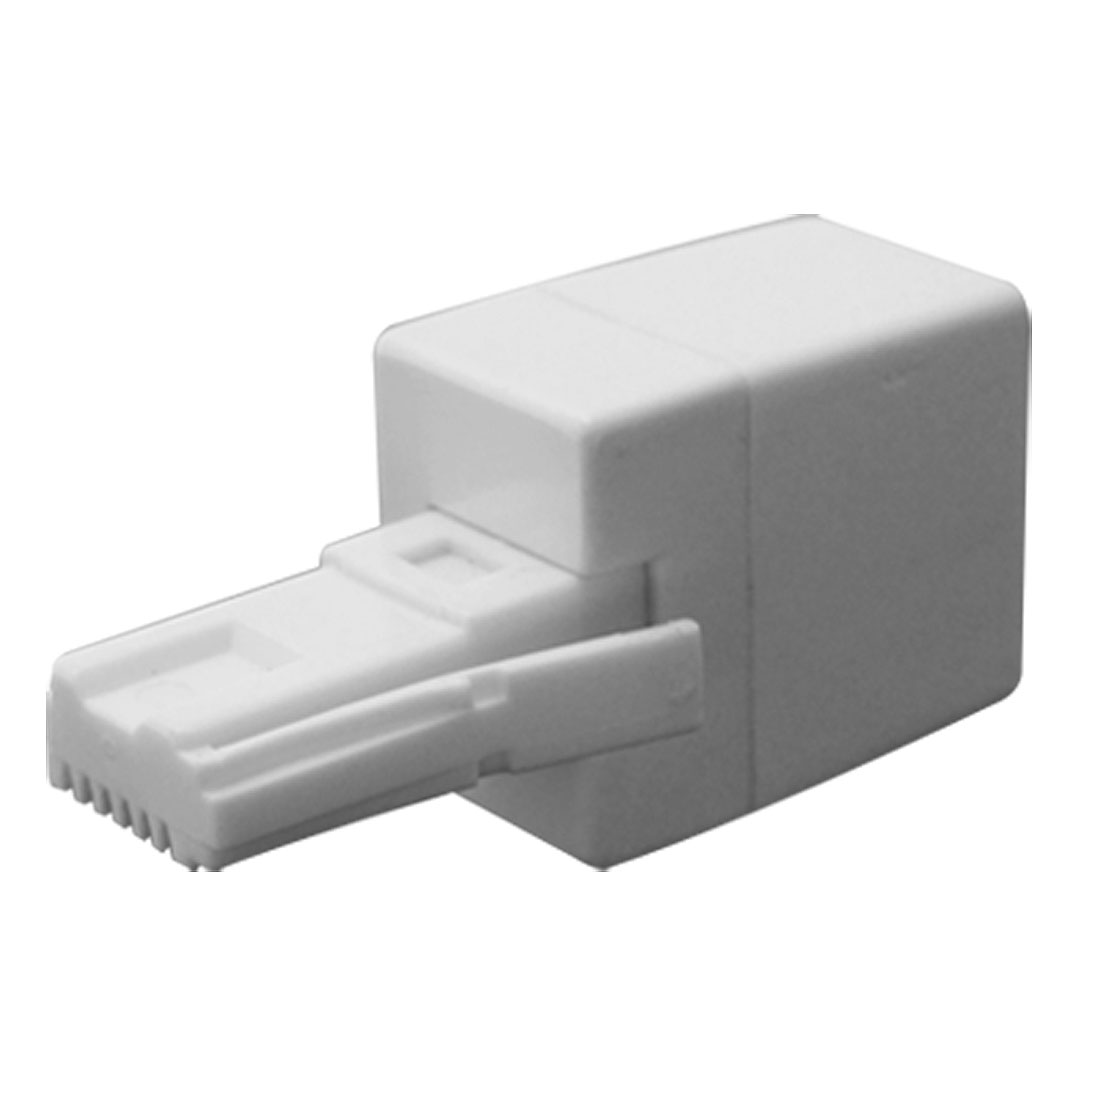 RJ11 Socket to UK BT Telephone Adapter Converter 2 Pcs